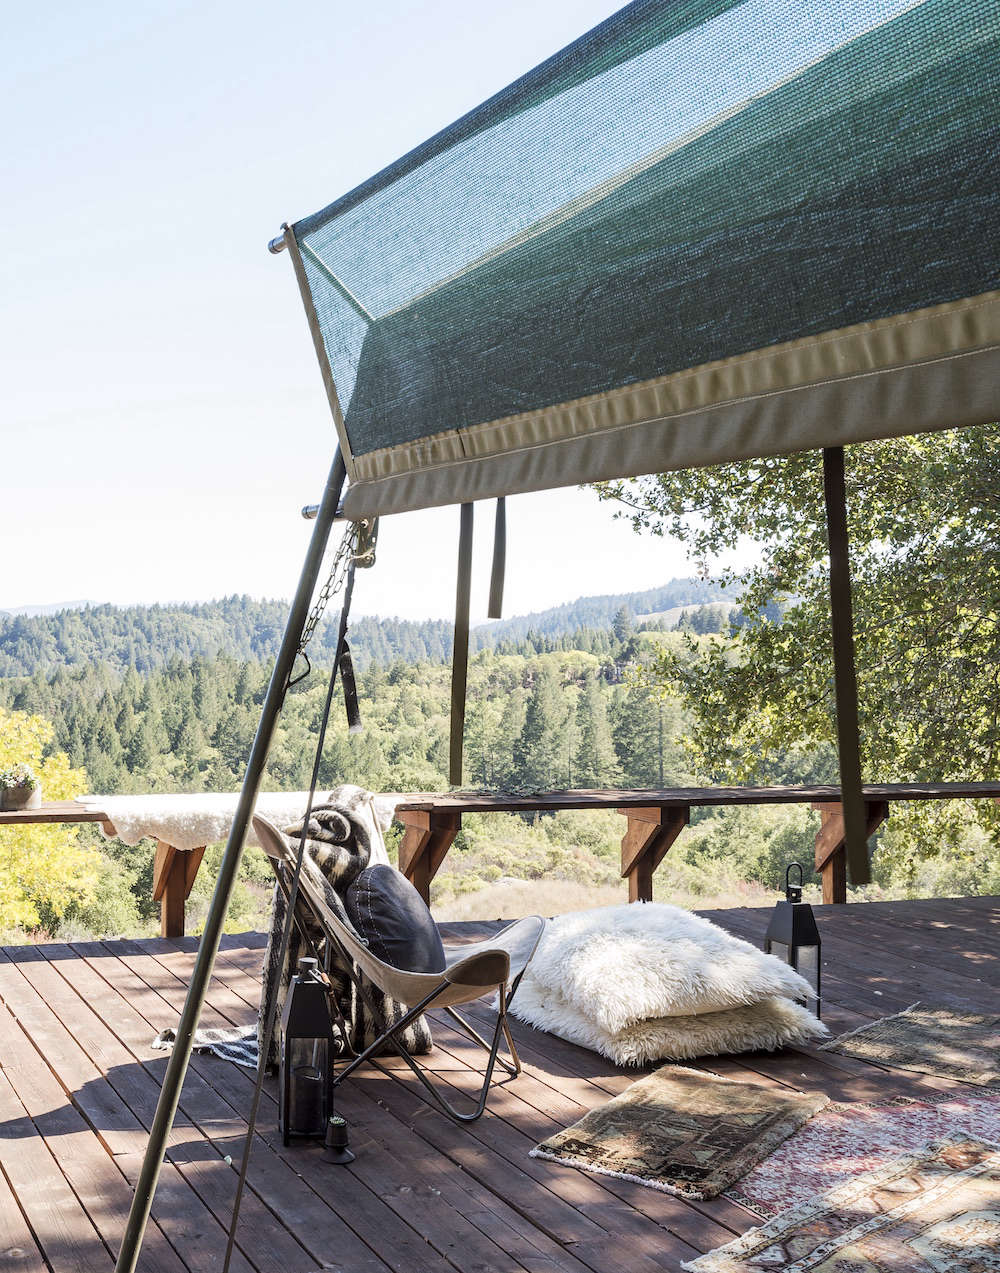 Glamping Deck in Napa with Butterfly Chairs and Pillows